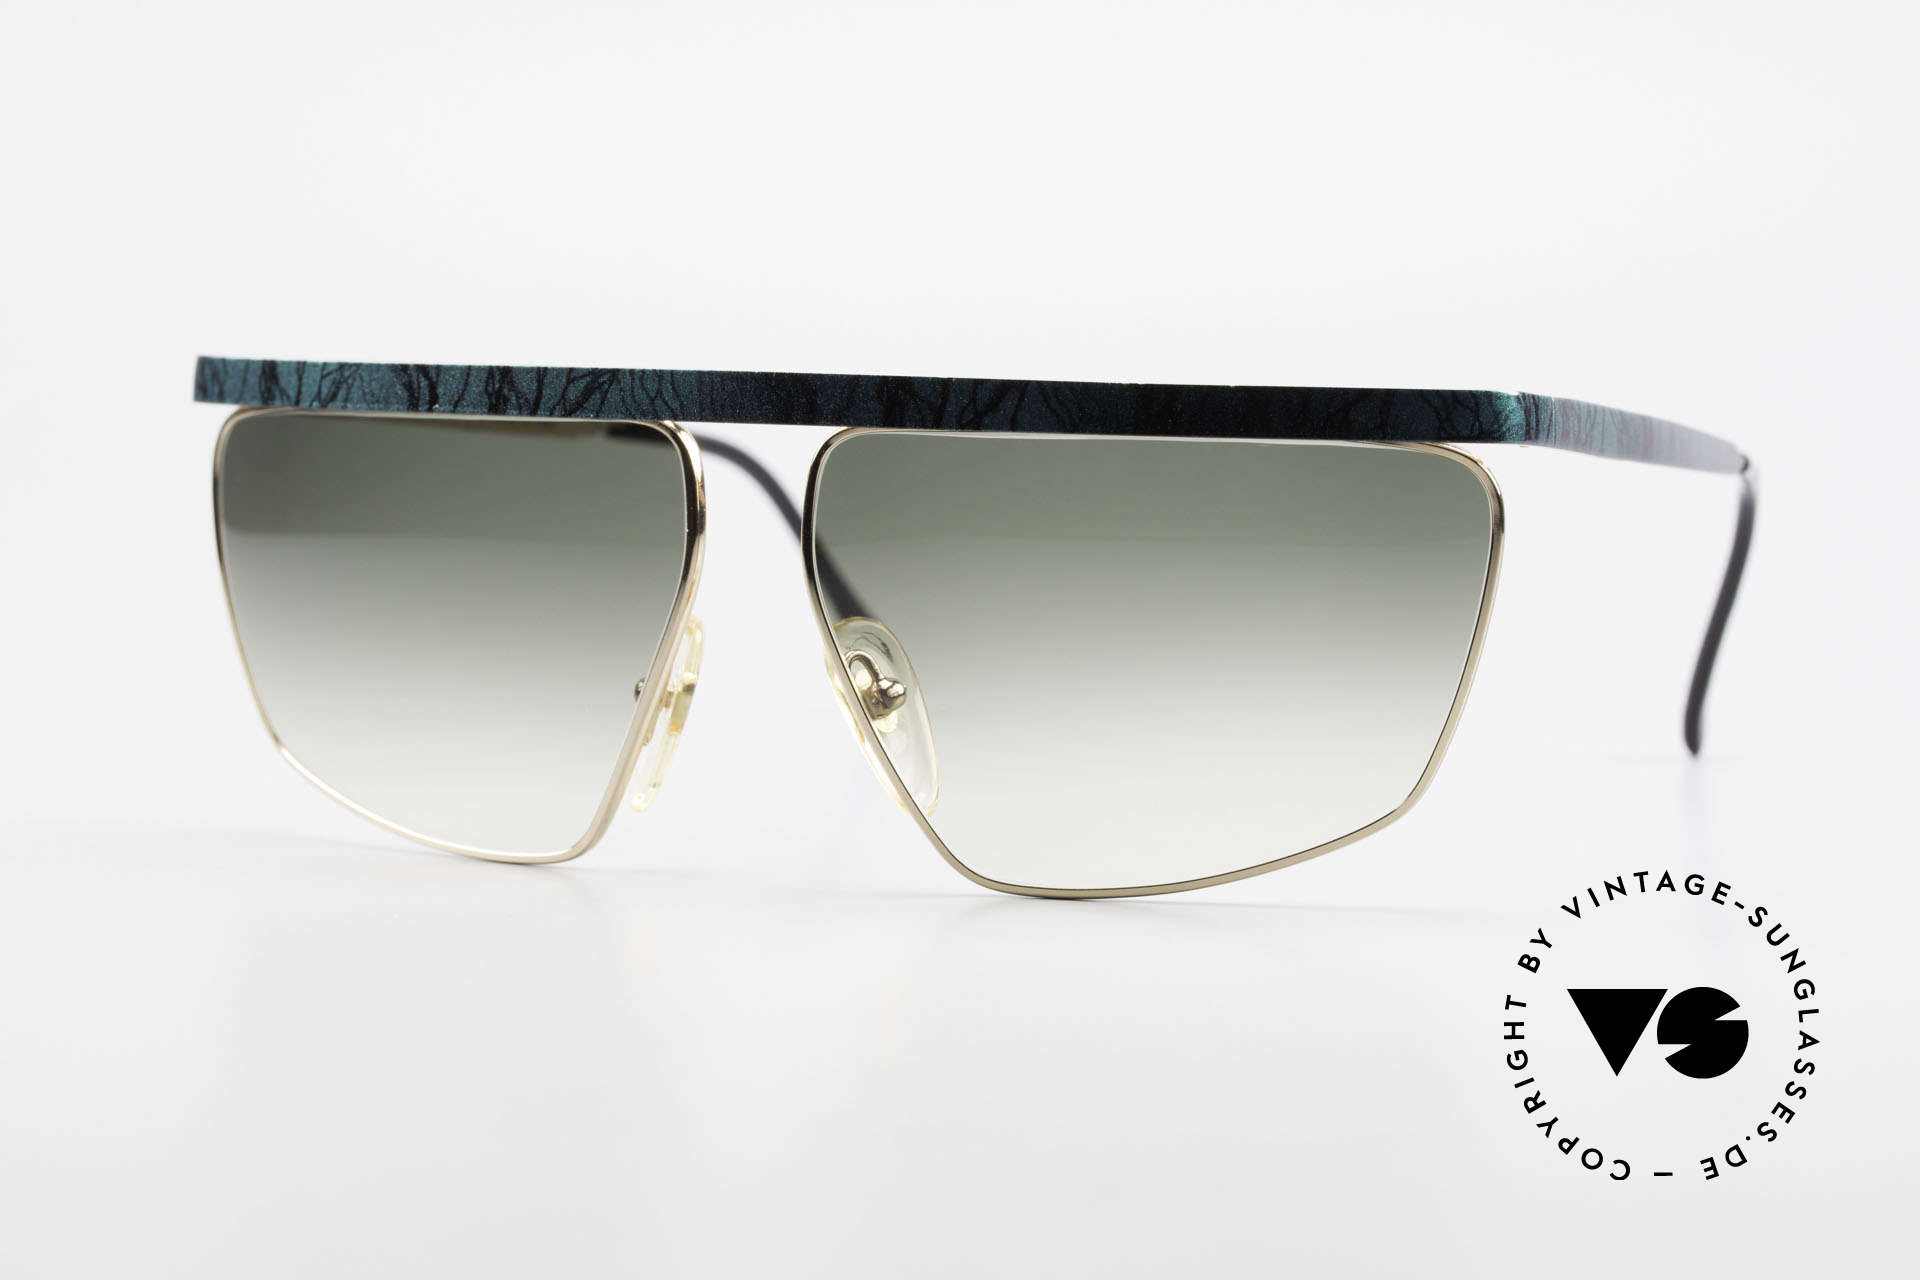 Casanova CN7 Luxury Sunglasses Gold-Plated, excentric Italian XL sunglasses design by Casanova, Made for Men and Women